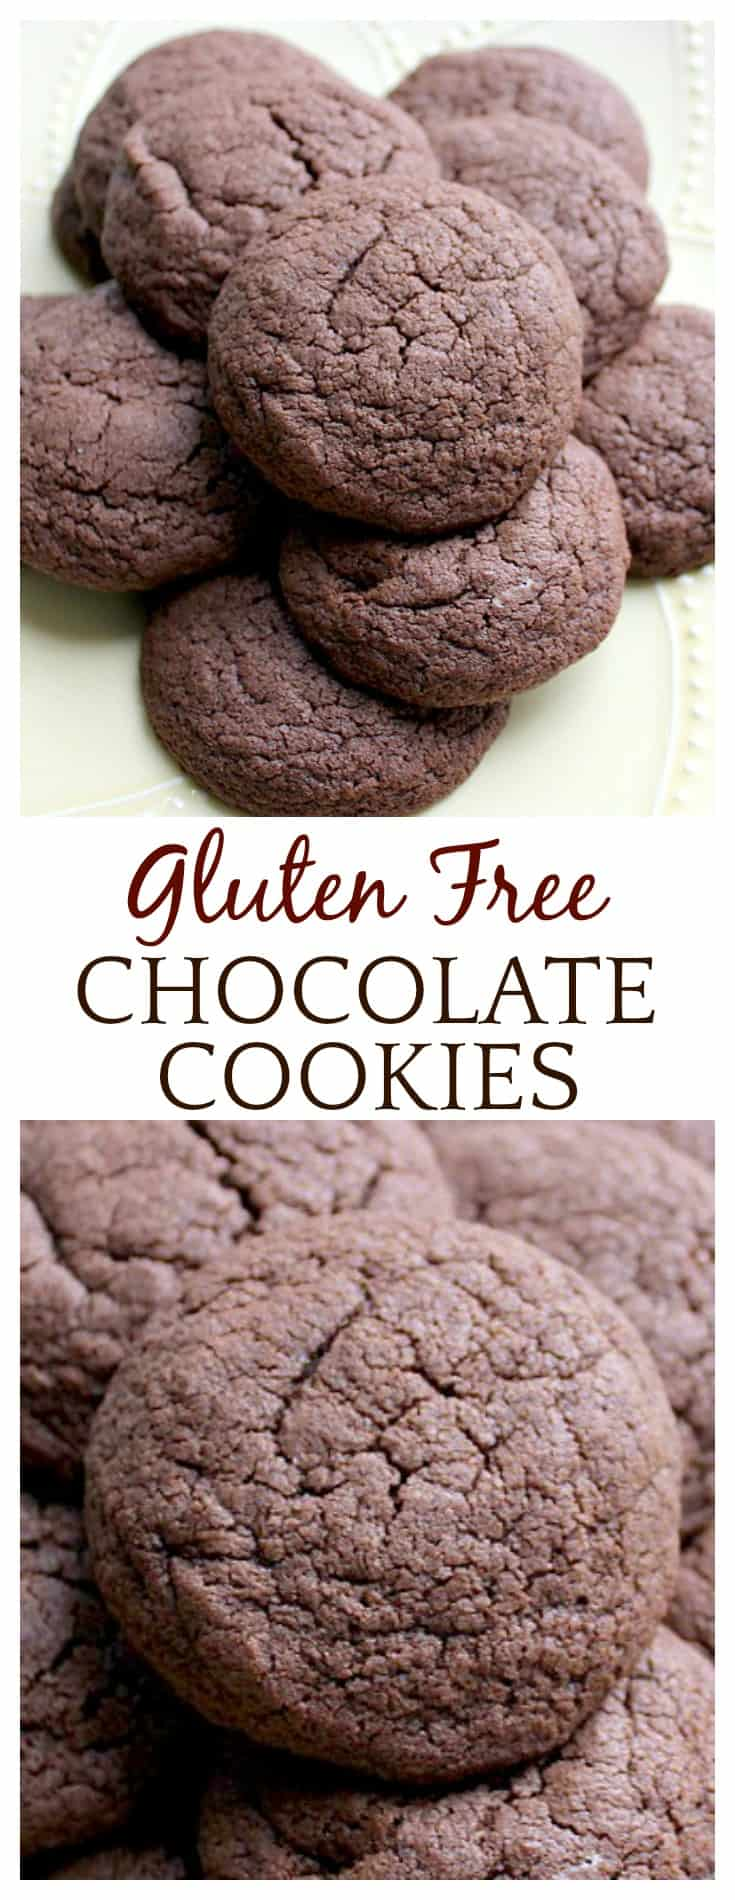 The best gluten free chocolate cookie recipe I've tried yet! They are delicious on their own or you can mix in chips, nuts, dried fruit, or whatever you please! So good - bet no one will even know they are gluten free!